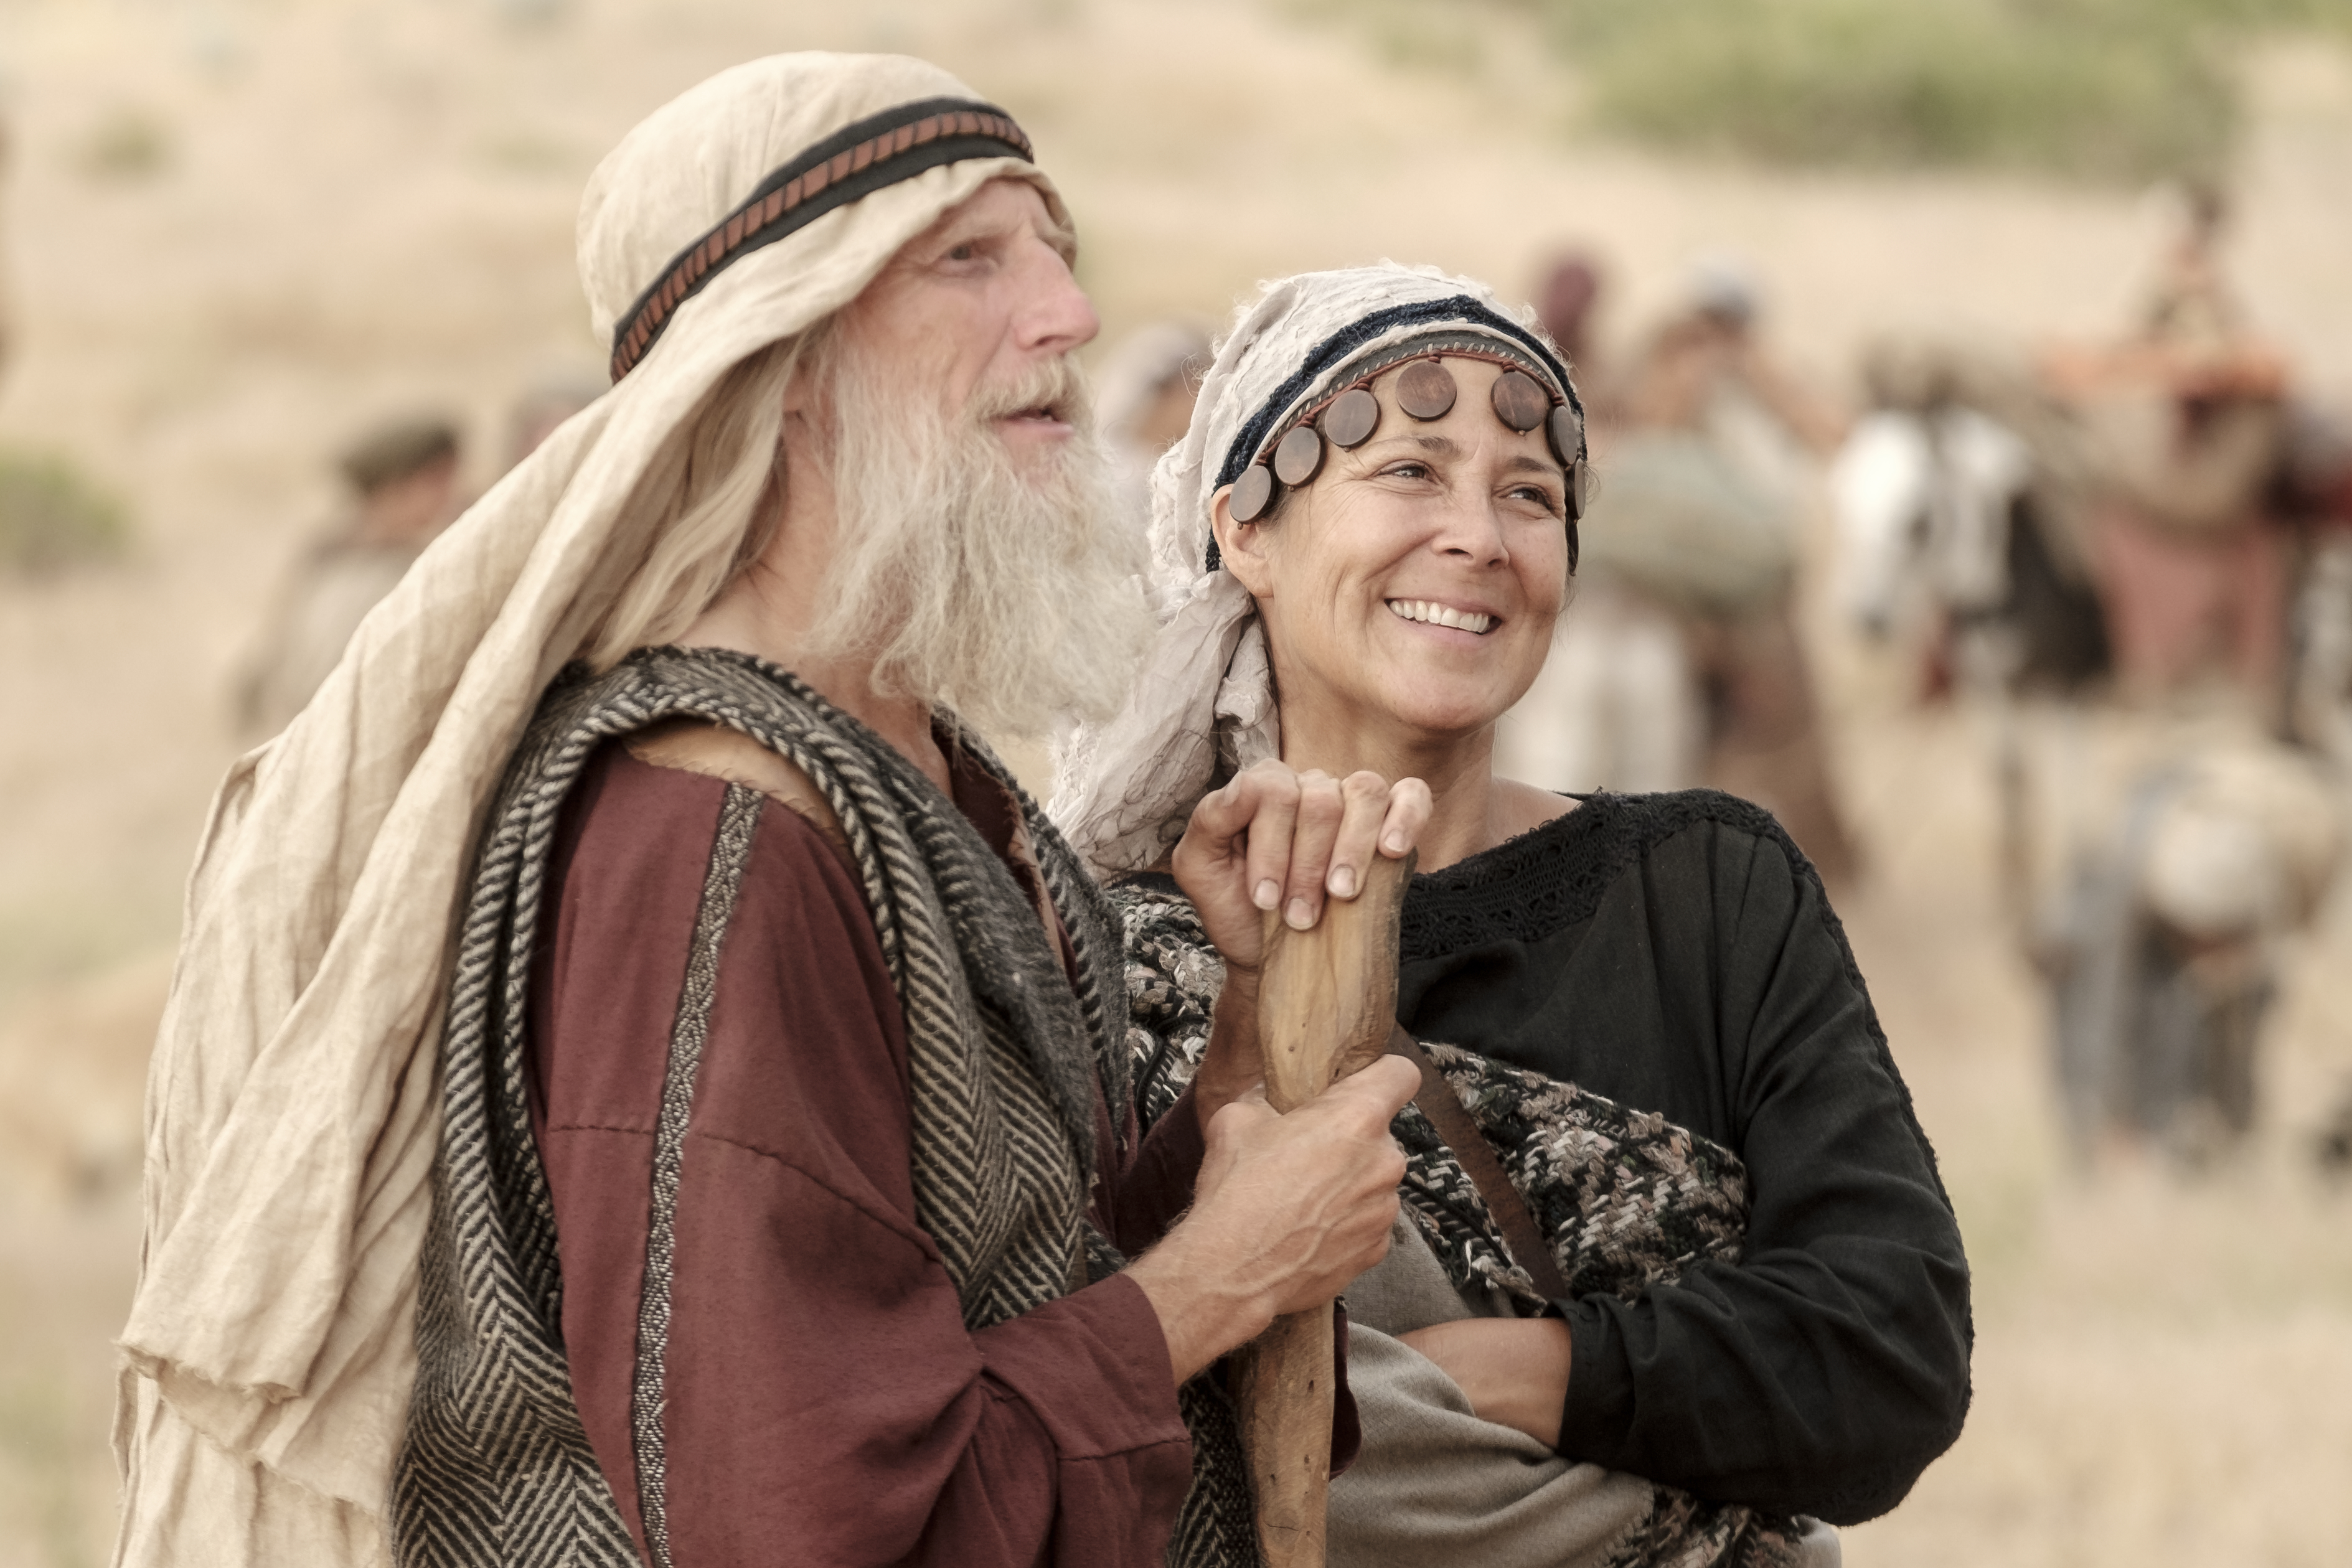 Ishmael and his wife talk in the wilderness.